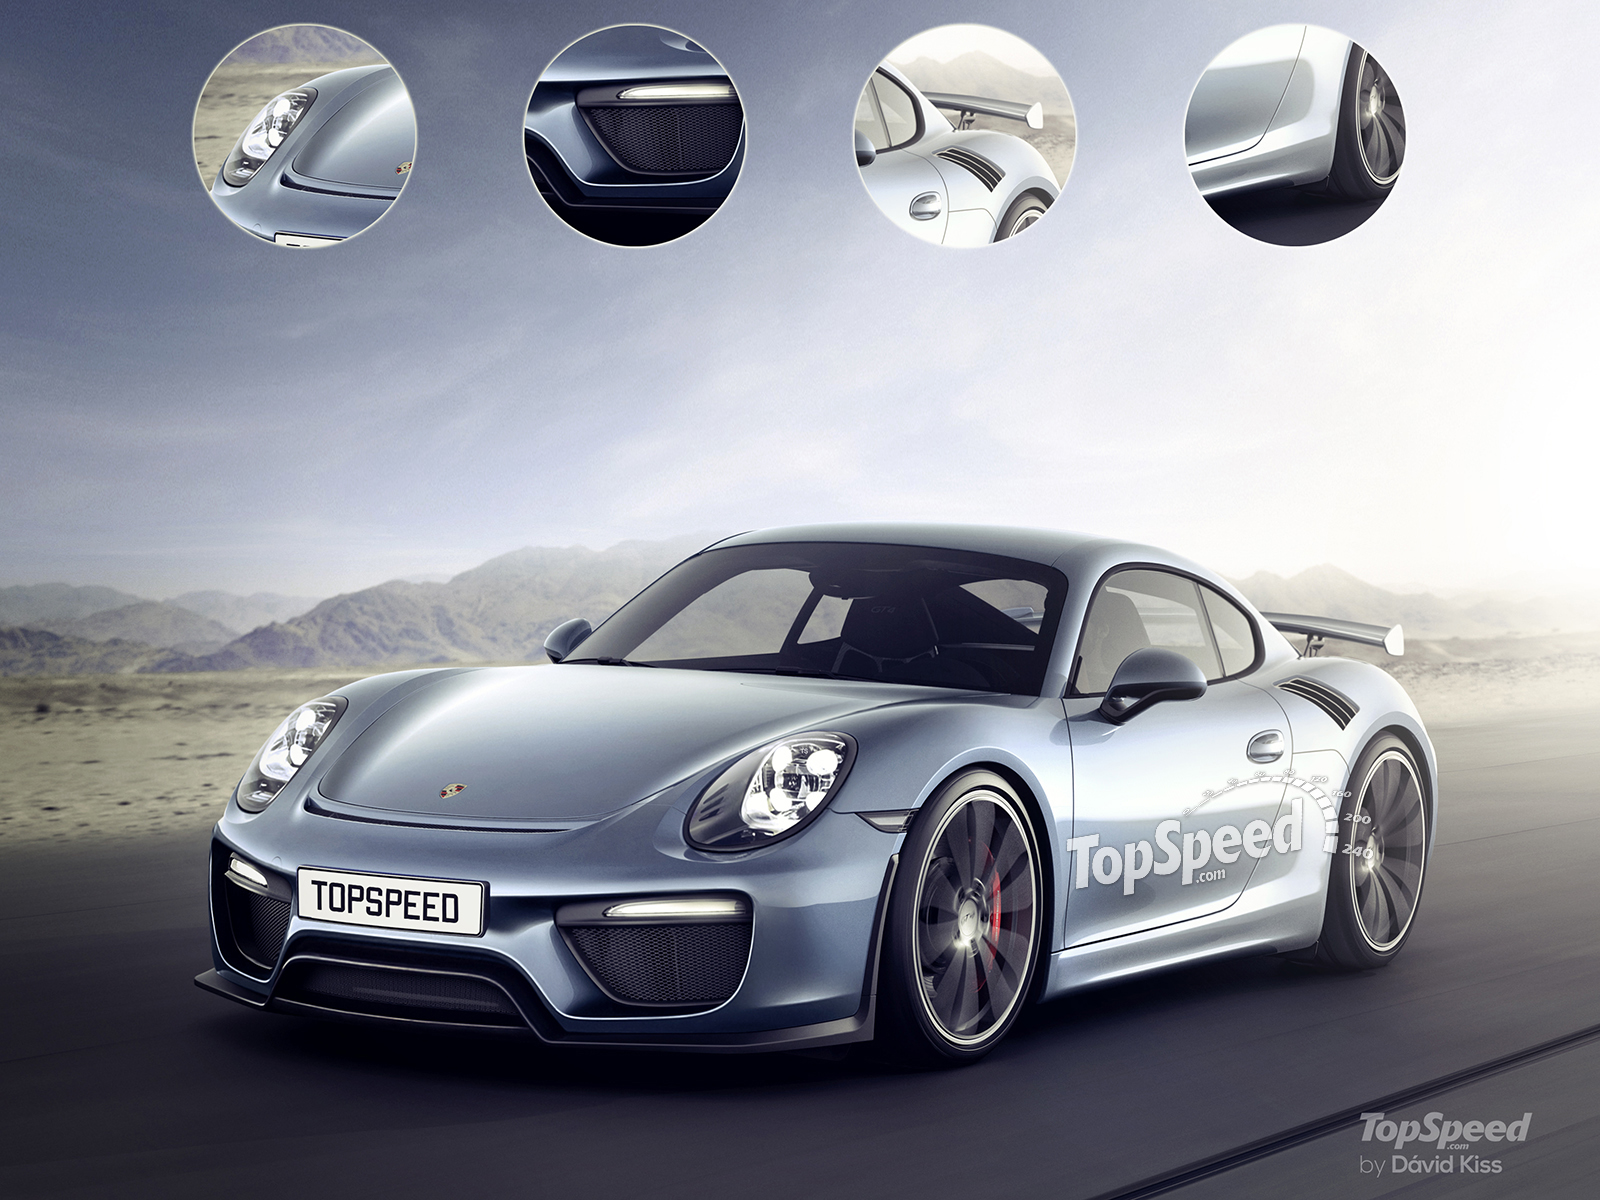 Porsche's GT5 Trademark: What Could It Be? | Top Speed